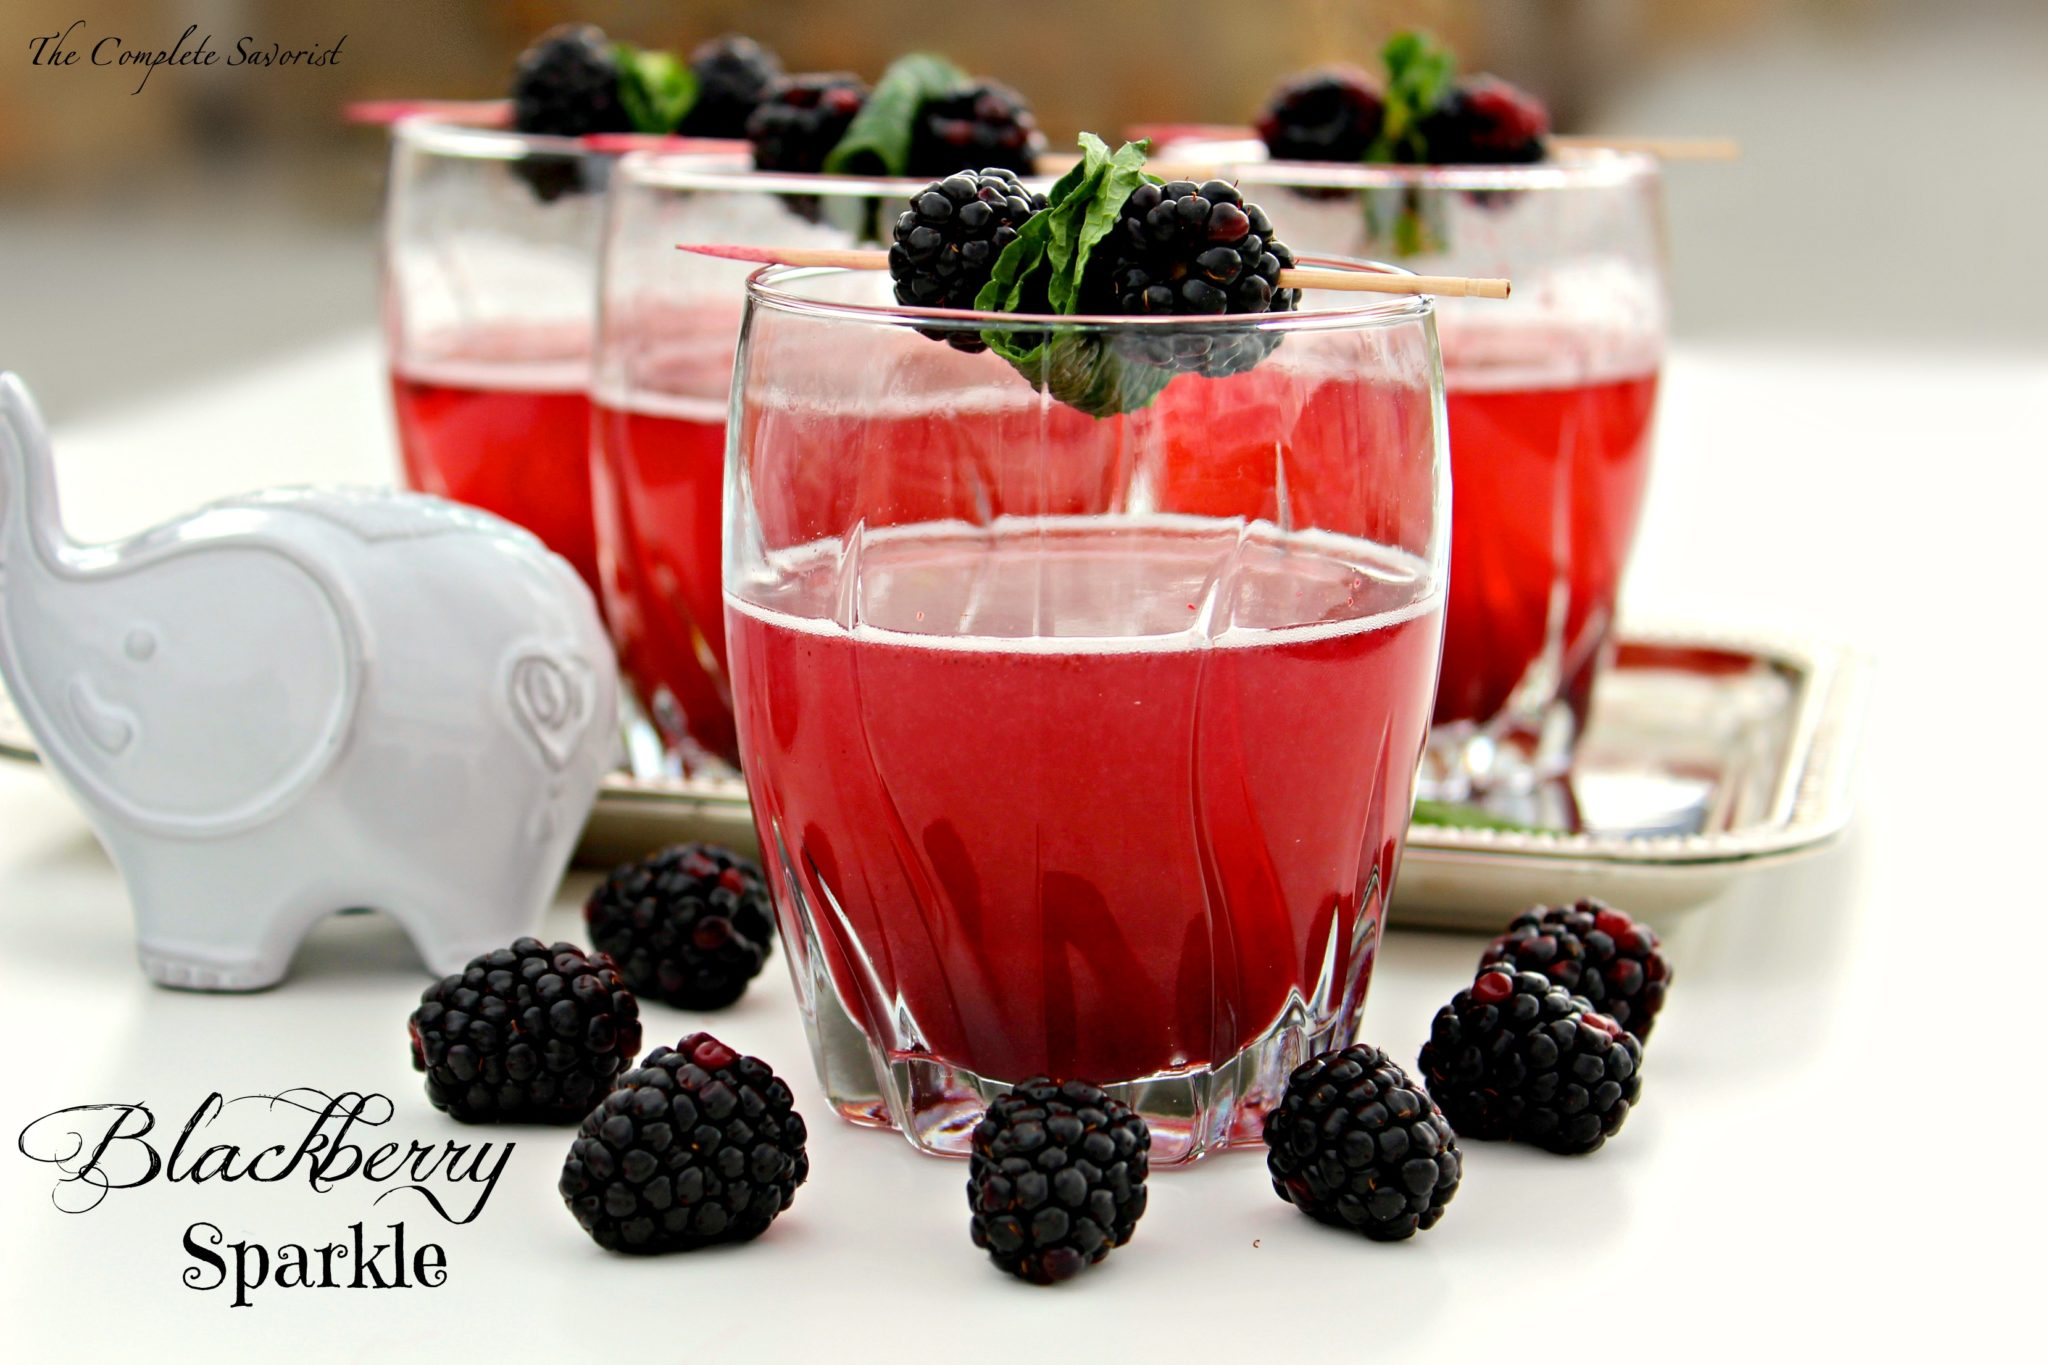 Blackberry Sparkle ~ A sparkling cocktail with Prosecco, ginger ale, and blackberry sauce ~ The Complete Savorist